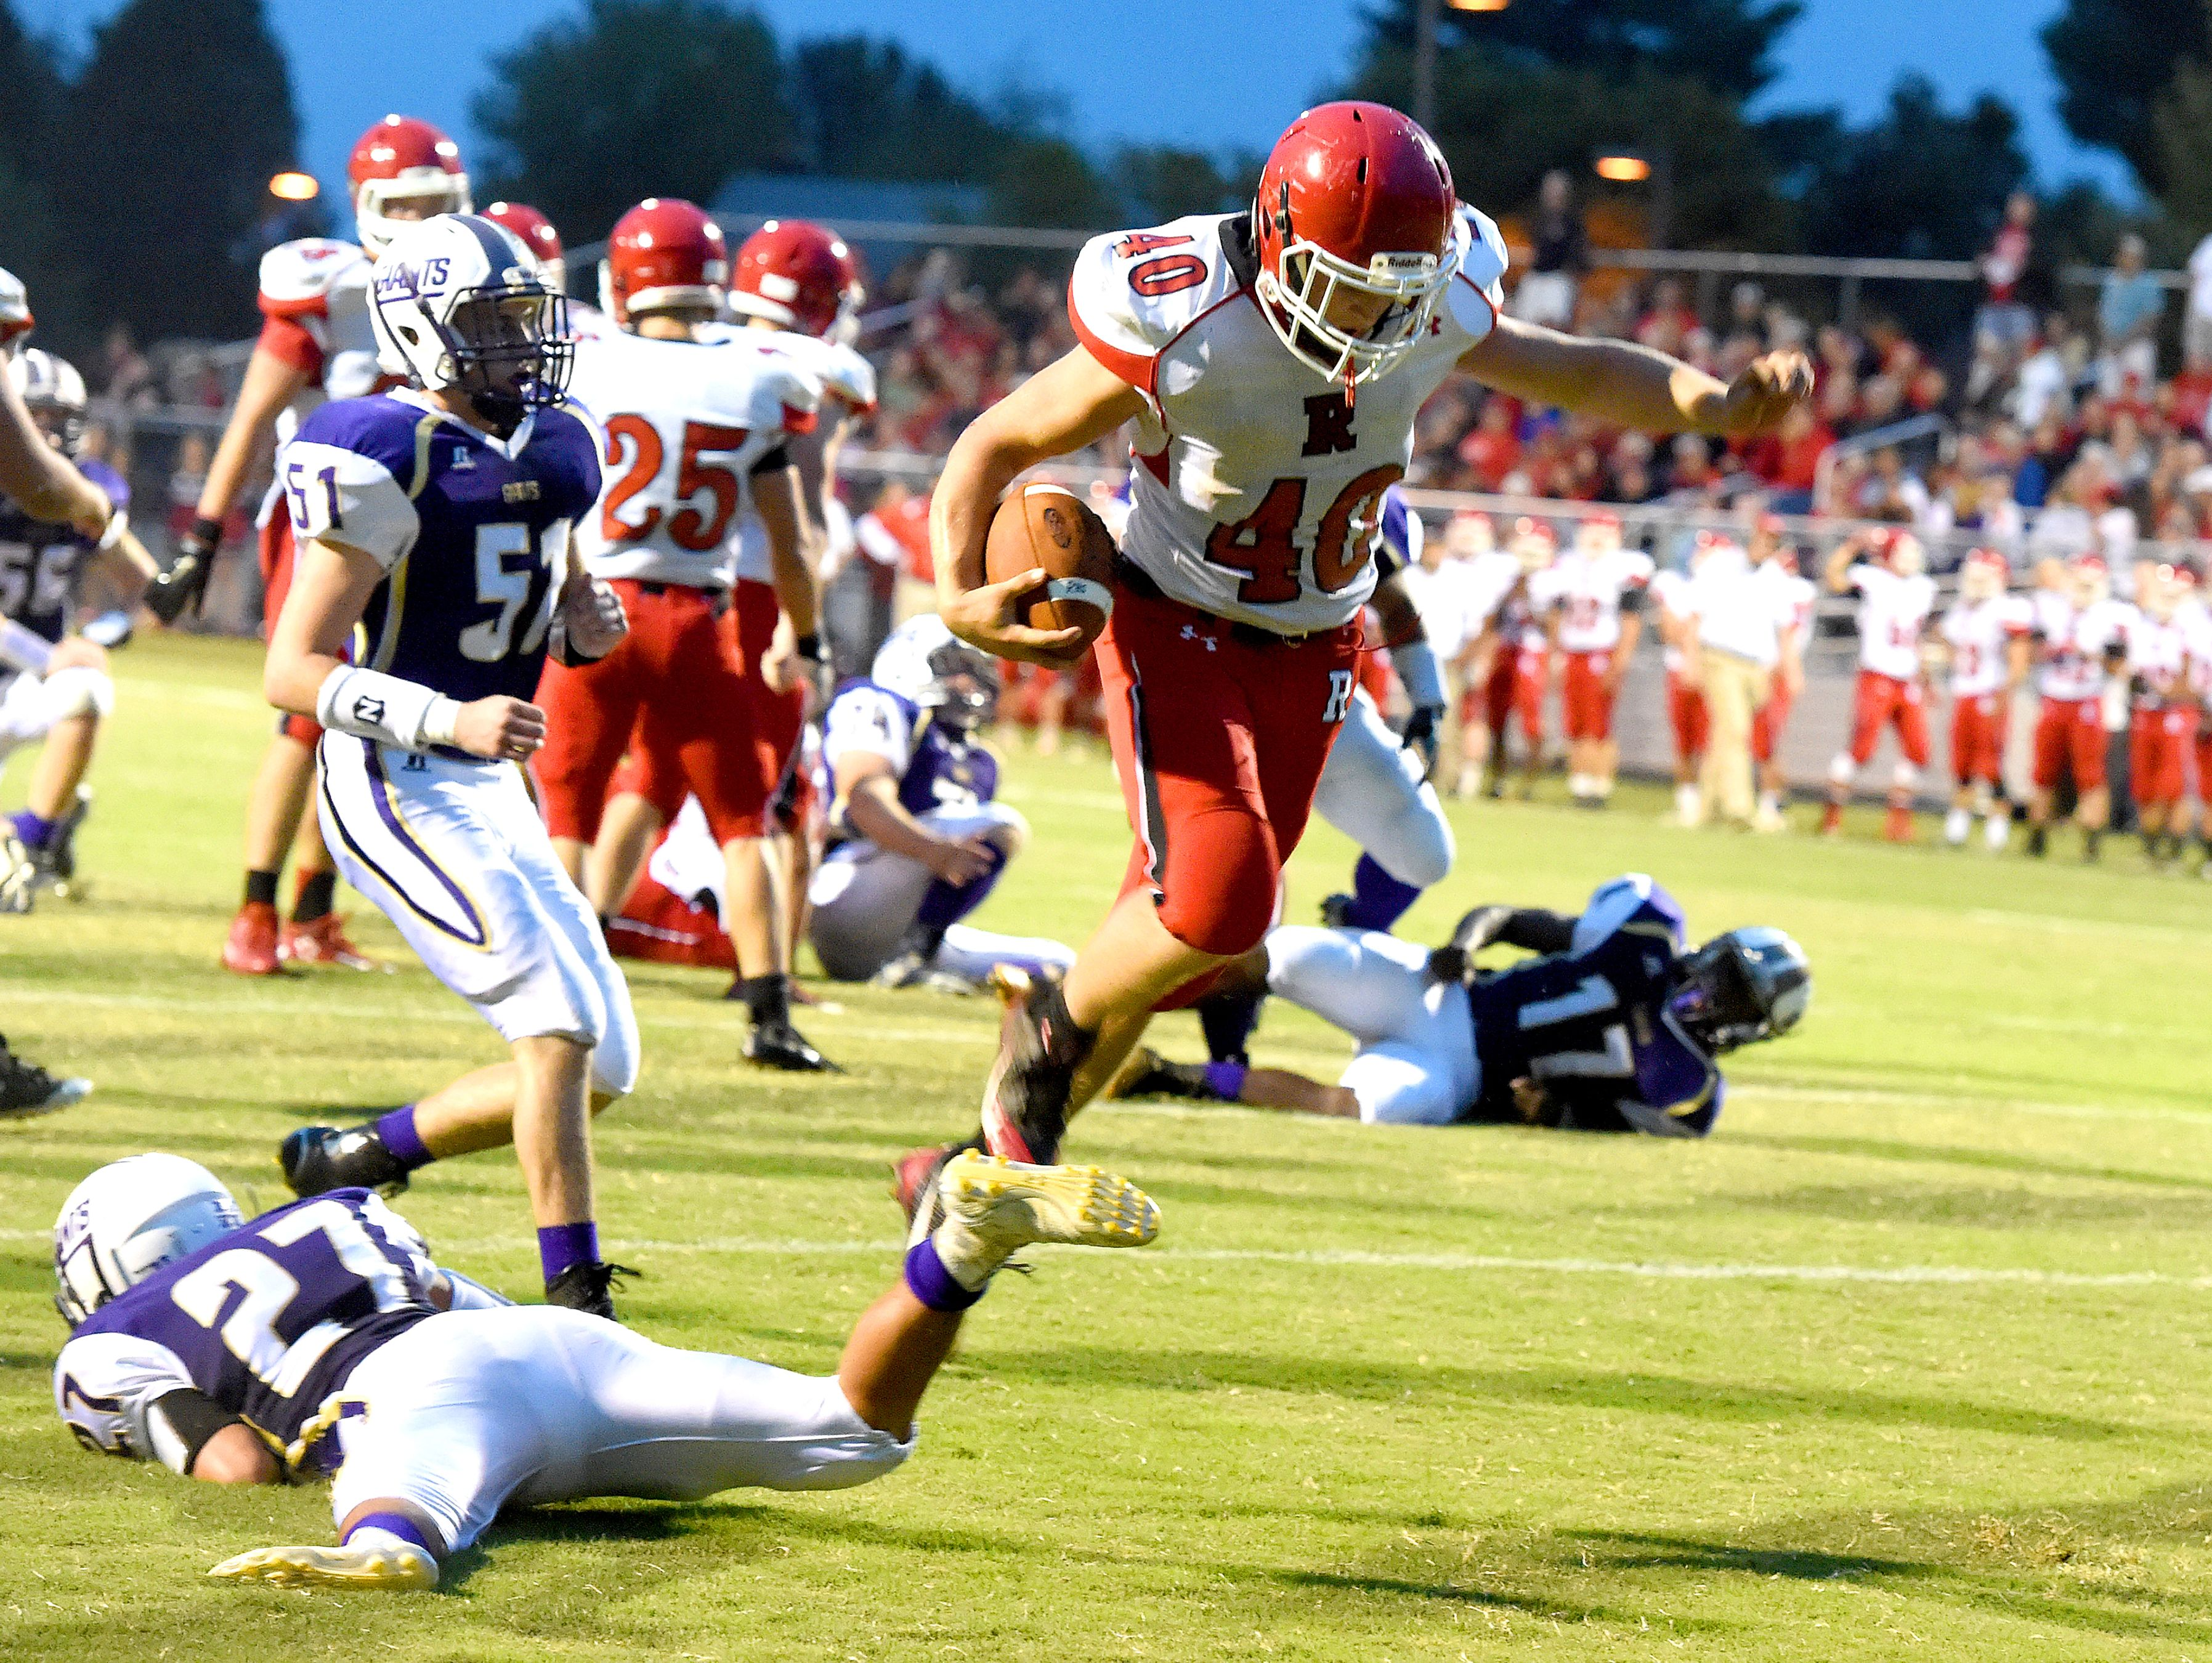 Riverheads' Harrison Schaefer jumps over Waynesboro's Phillip Monterrozo as he takes the football into the end zone for a touchdown during a football game played in Waynesboro on Friday, Sept. 16, 2016.